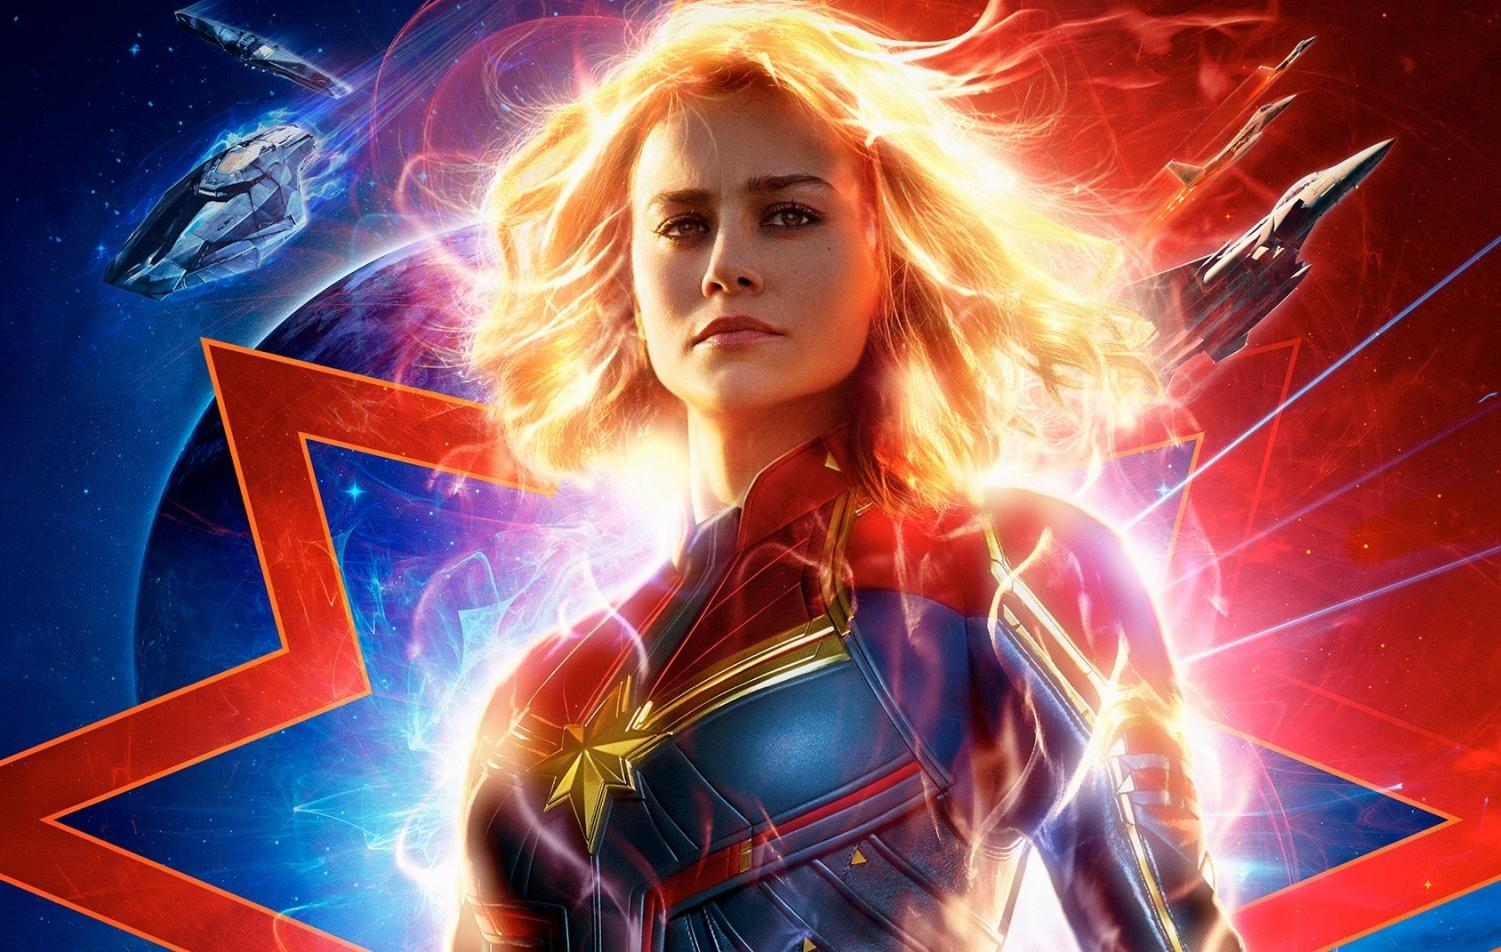 Brie Larson stars in Captain Marvel, just one of the movies you should go see this year.